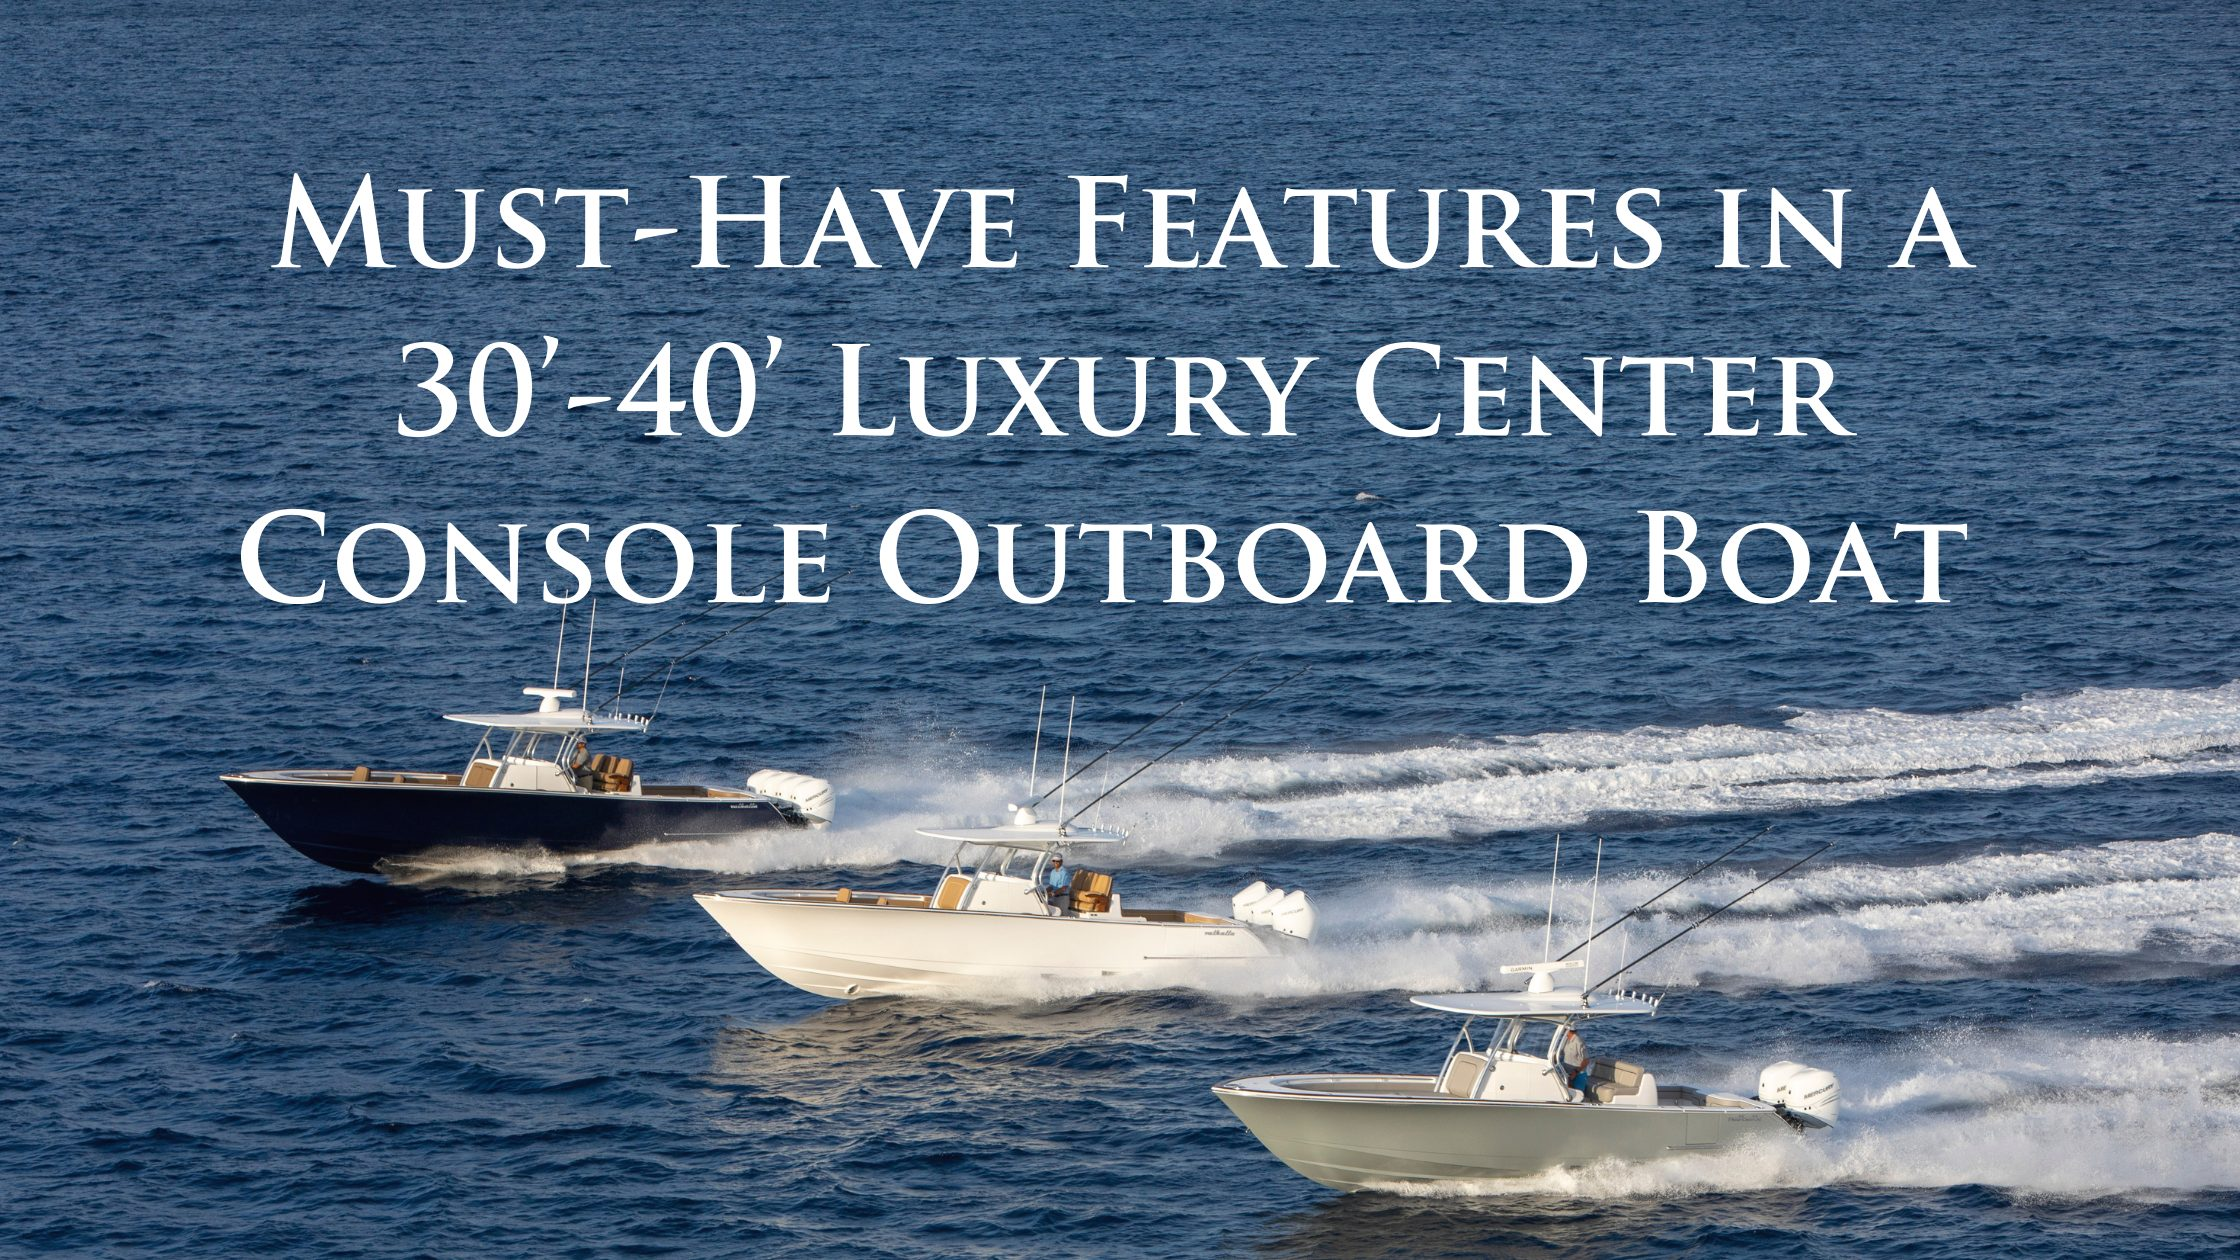 Must-Have Features in a 30'-40' Luxury Center Console Outboard Boat